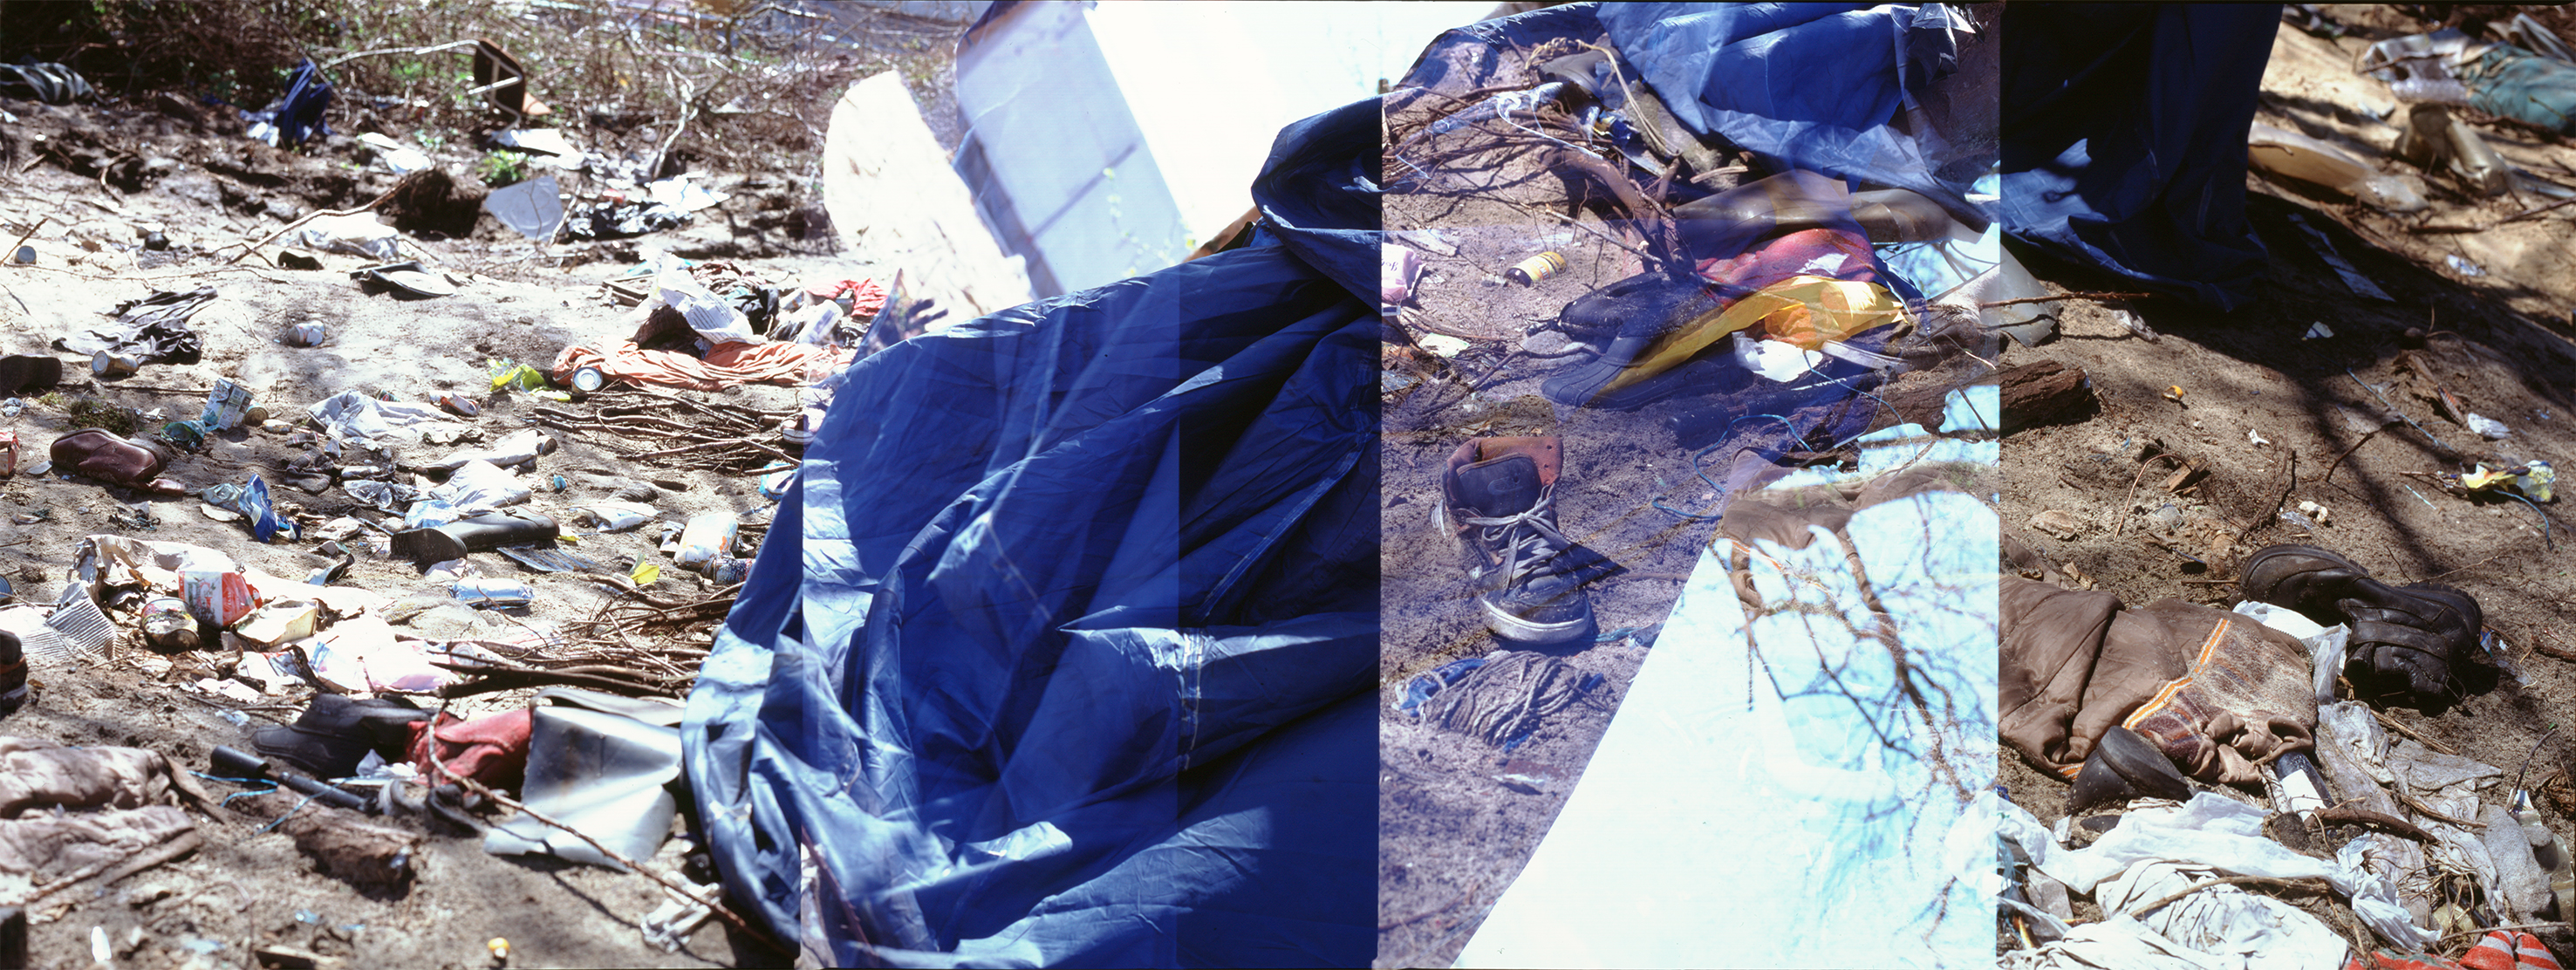 Calais the jungle refugees camp-tent-debris